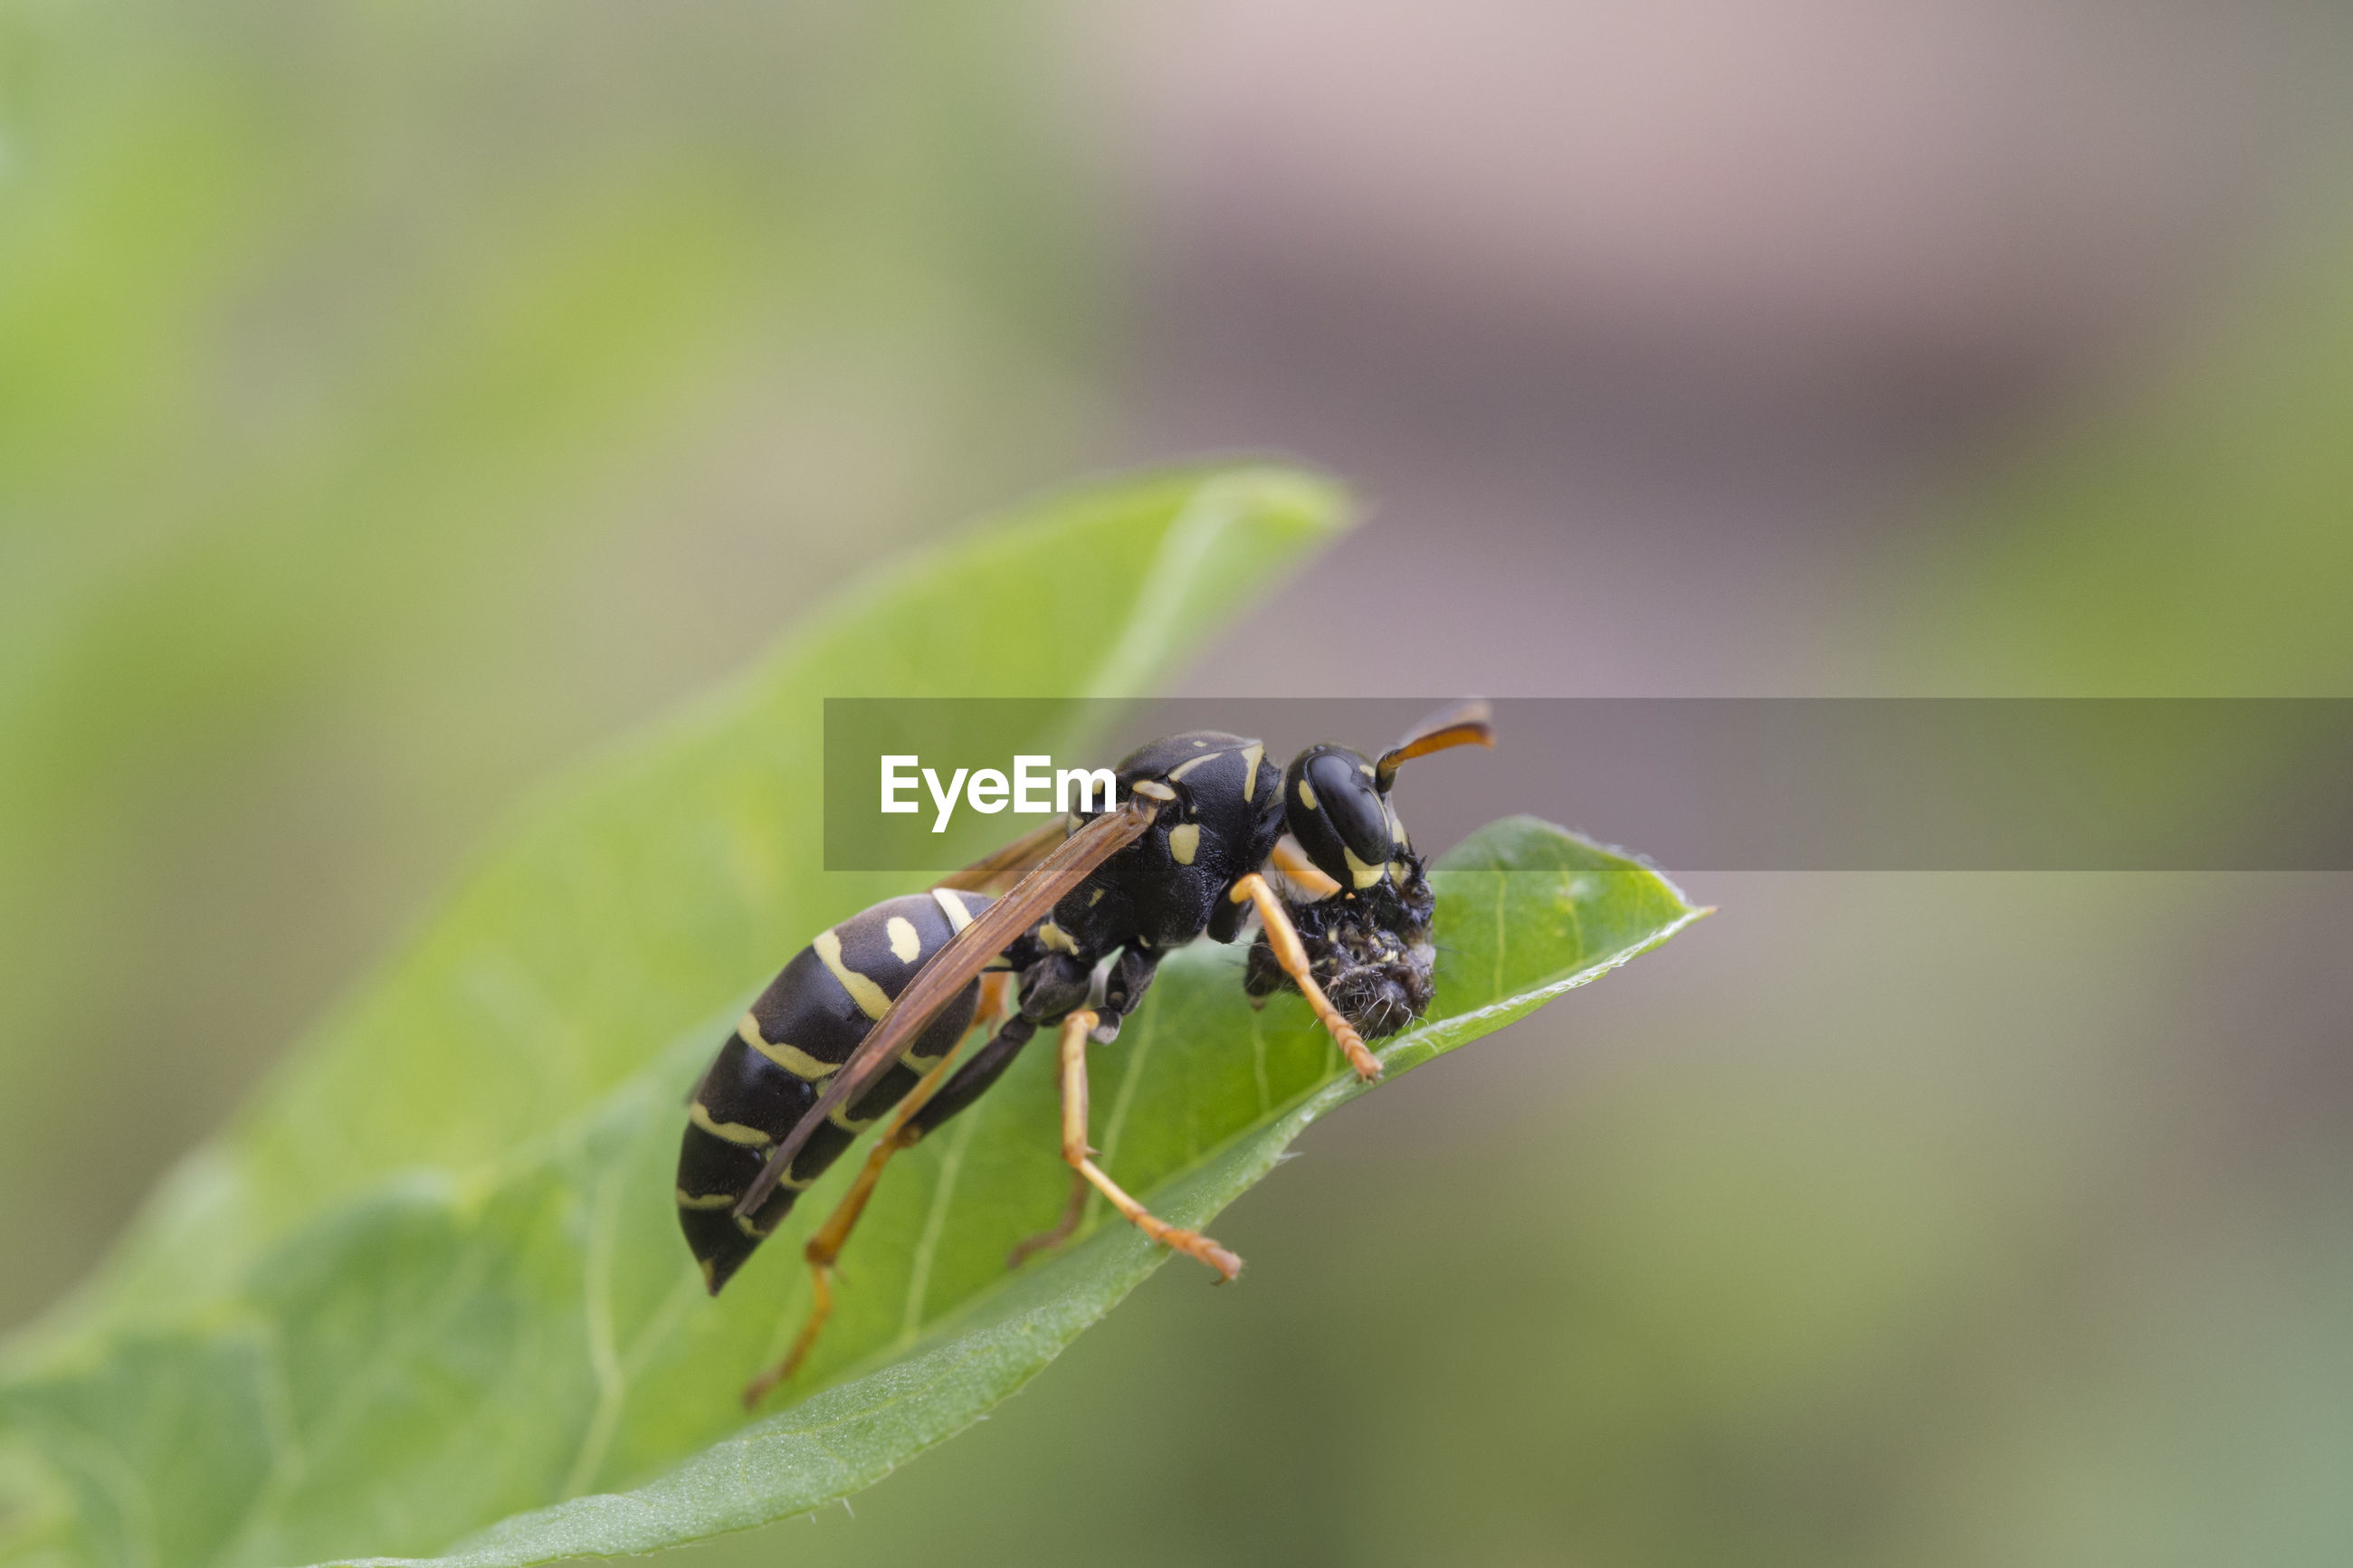 CLOSE-UP OF INSECT PERCHING ON LEAF